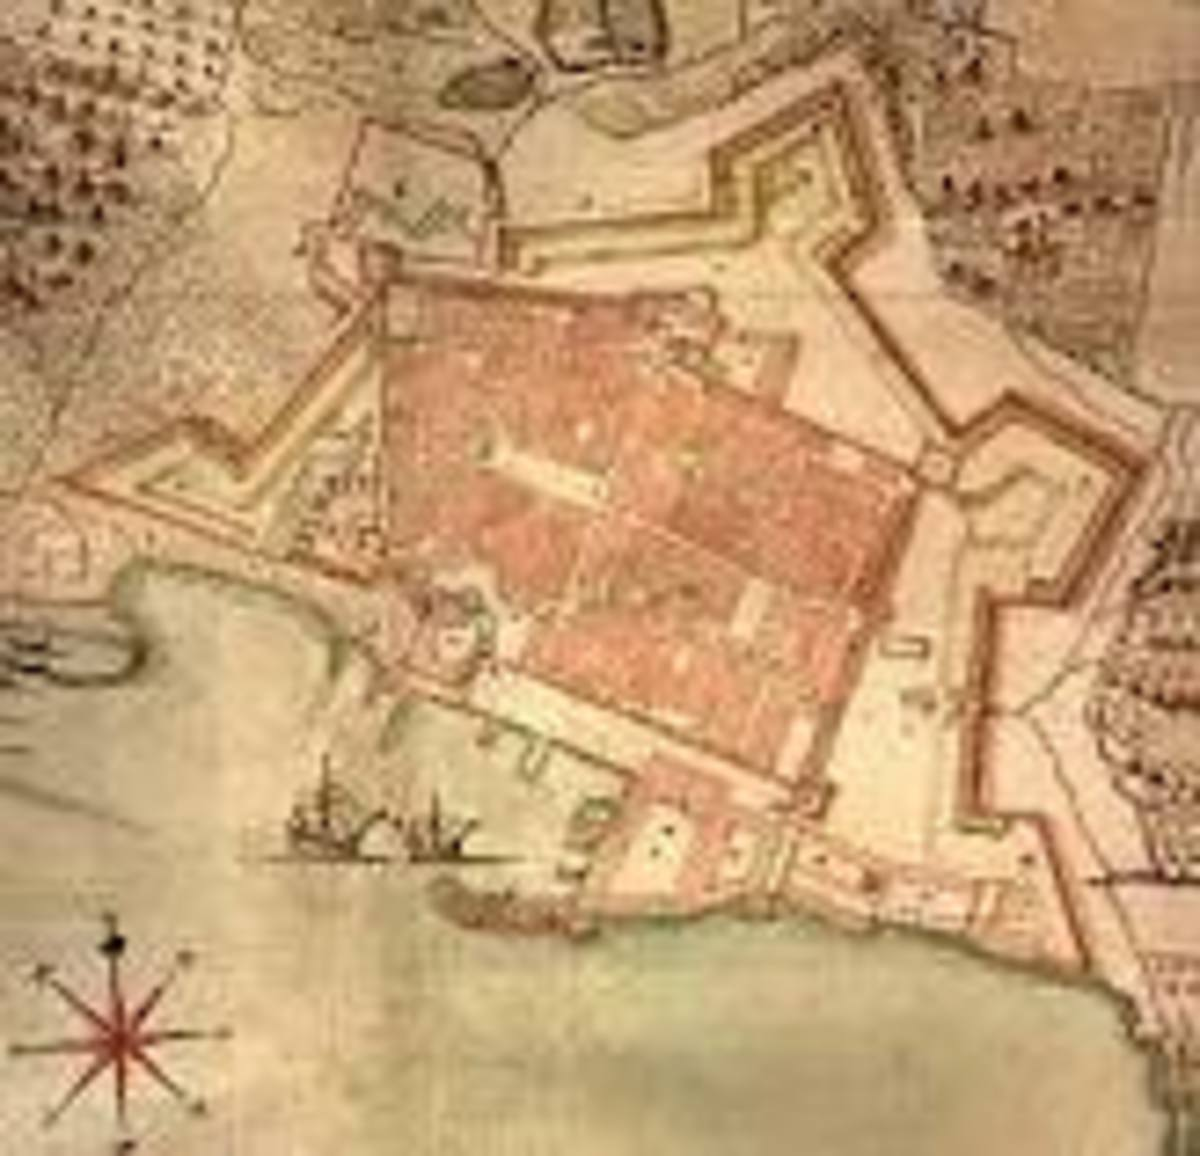 How the city fortified itself against the Turks.  The star shaped design was used to keep the Turks out.  They came to 15 km of the city walls and camped outside the city for 111 years.